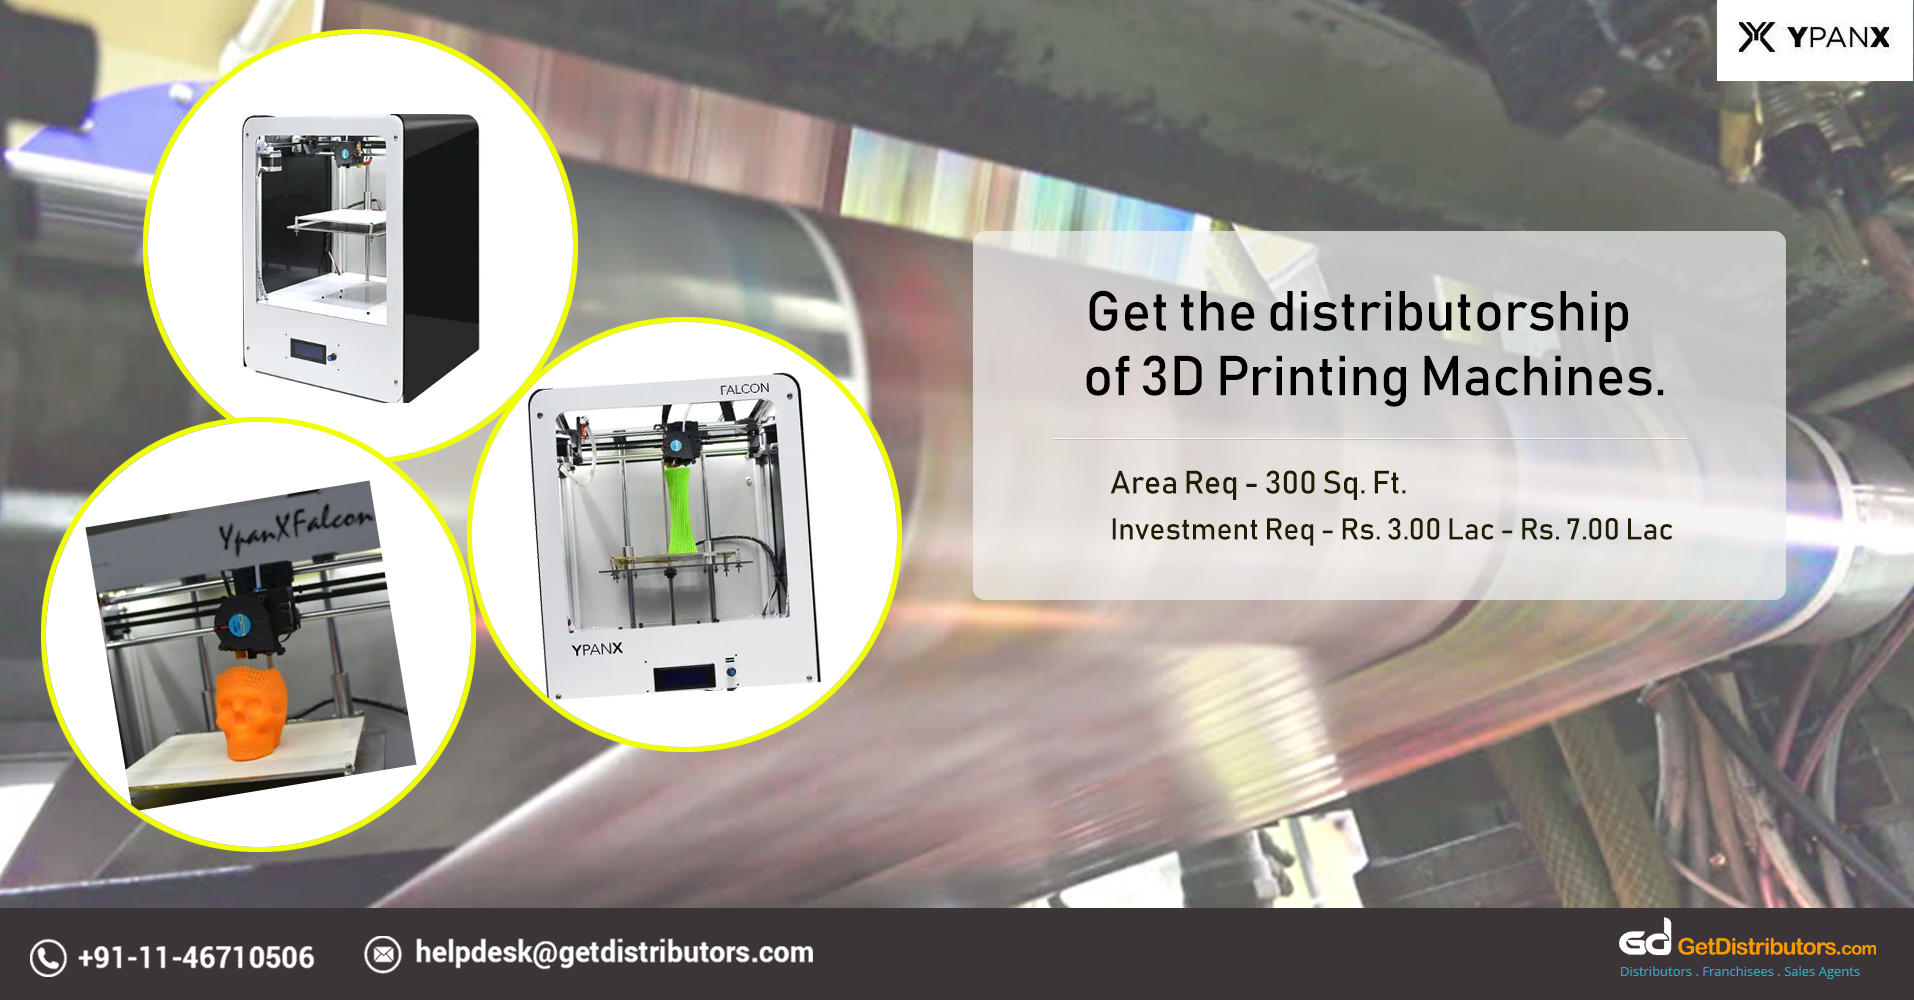 Efficient 3D Printing Machines Distributorship At Reasonable Prices